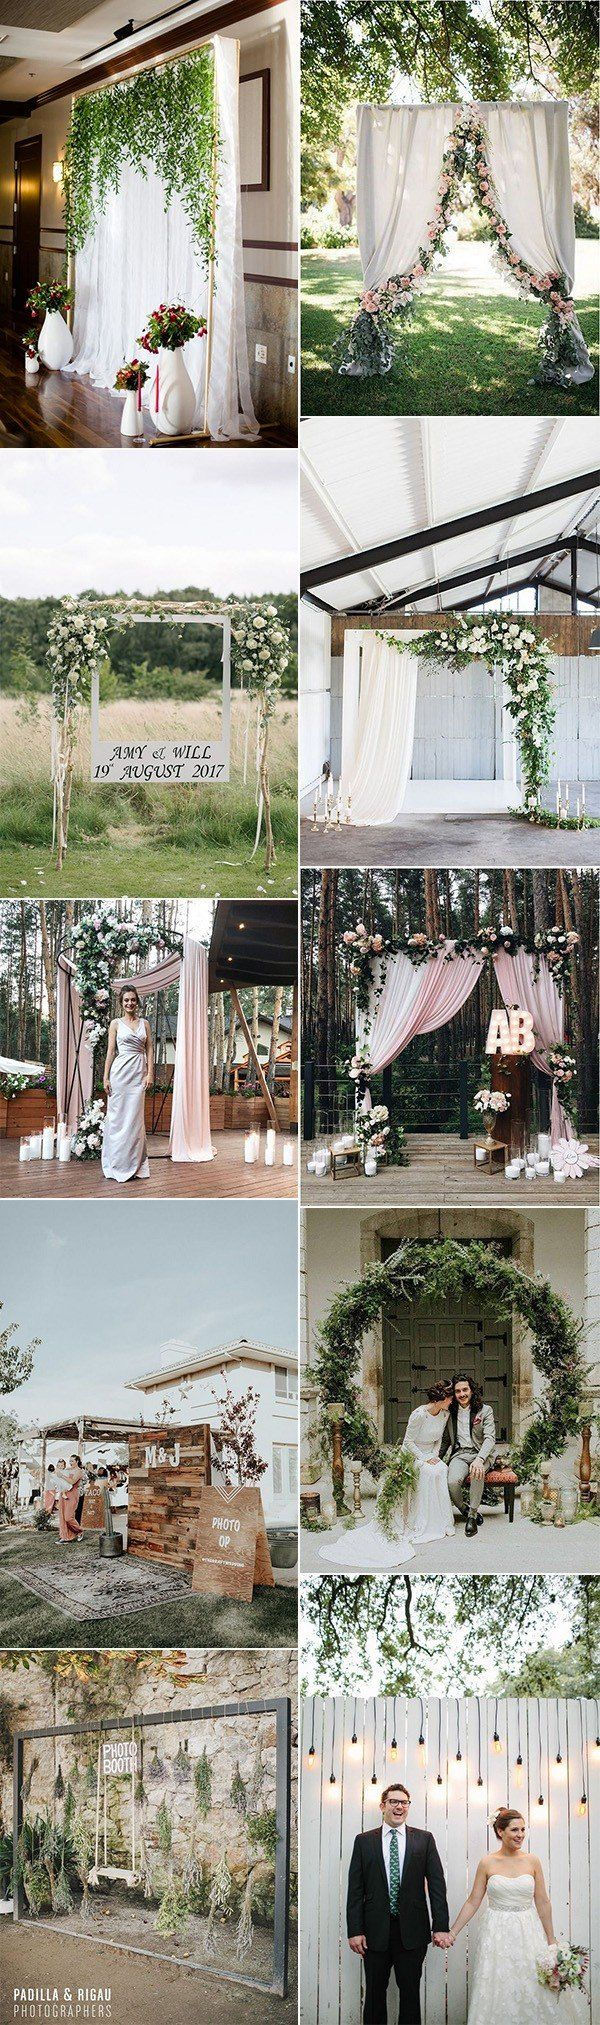 Wedding decoration ideas backdrops   Stunning Wedding Photo Booth Backdrop Ideas in   Enchanted